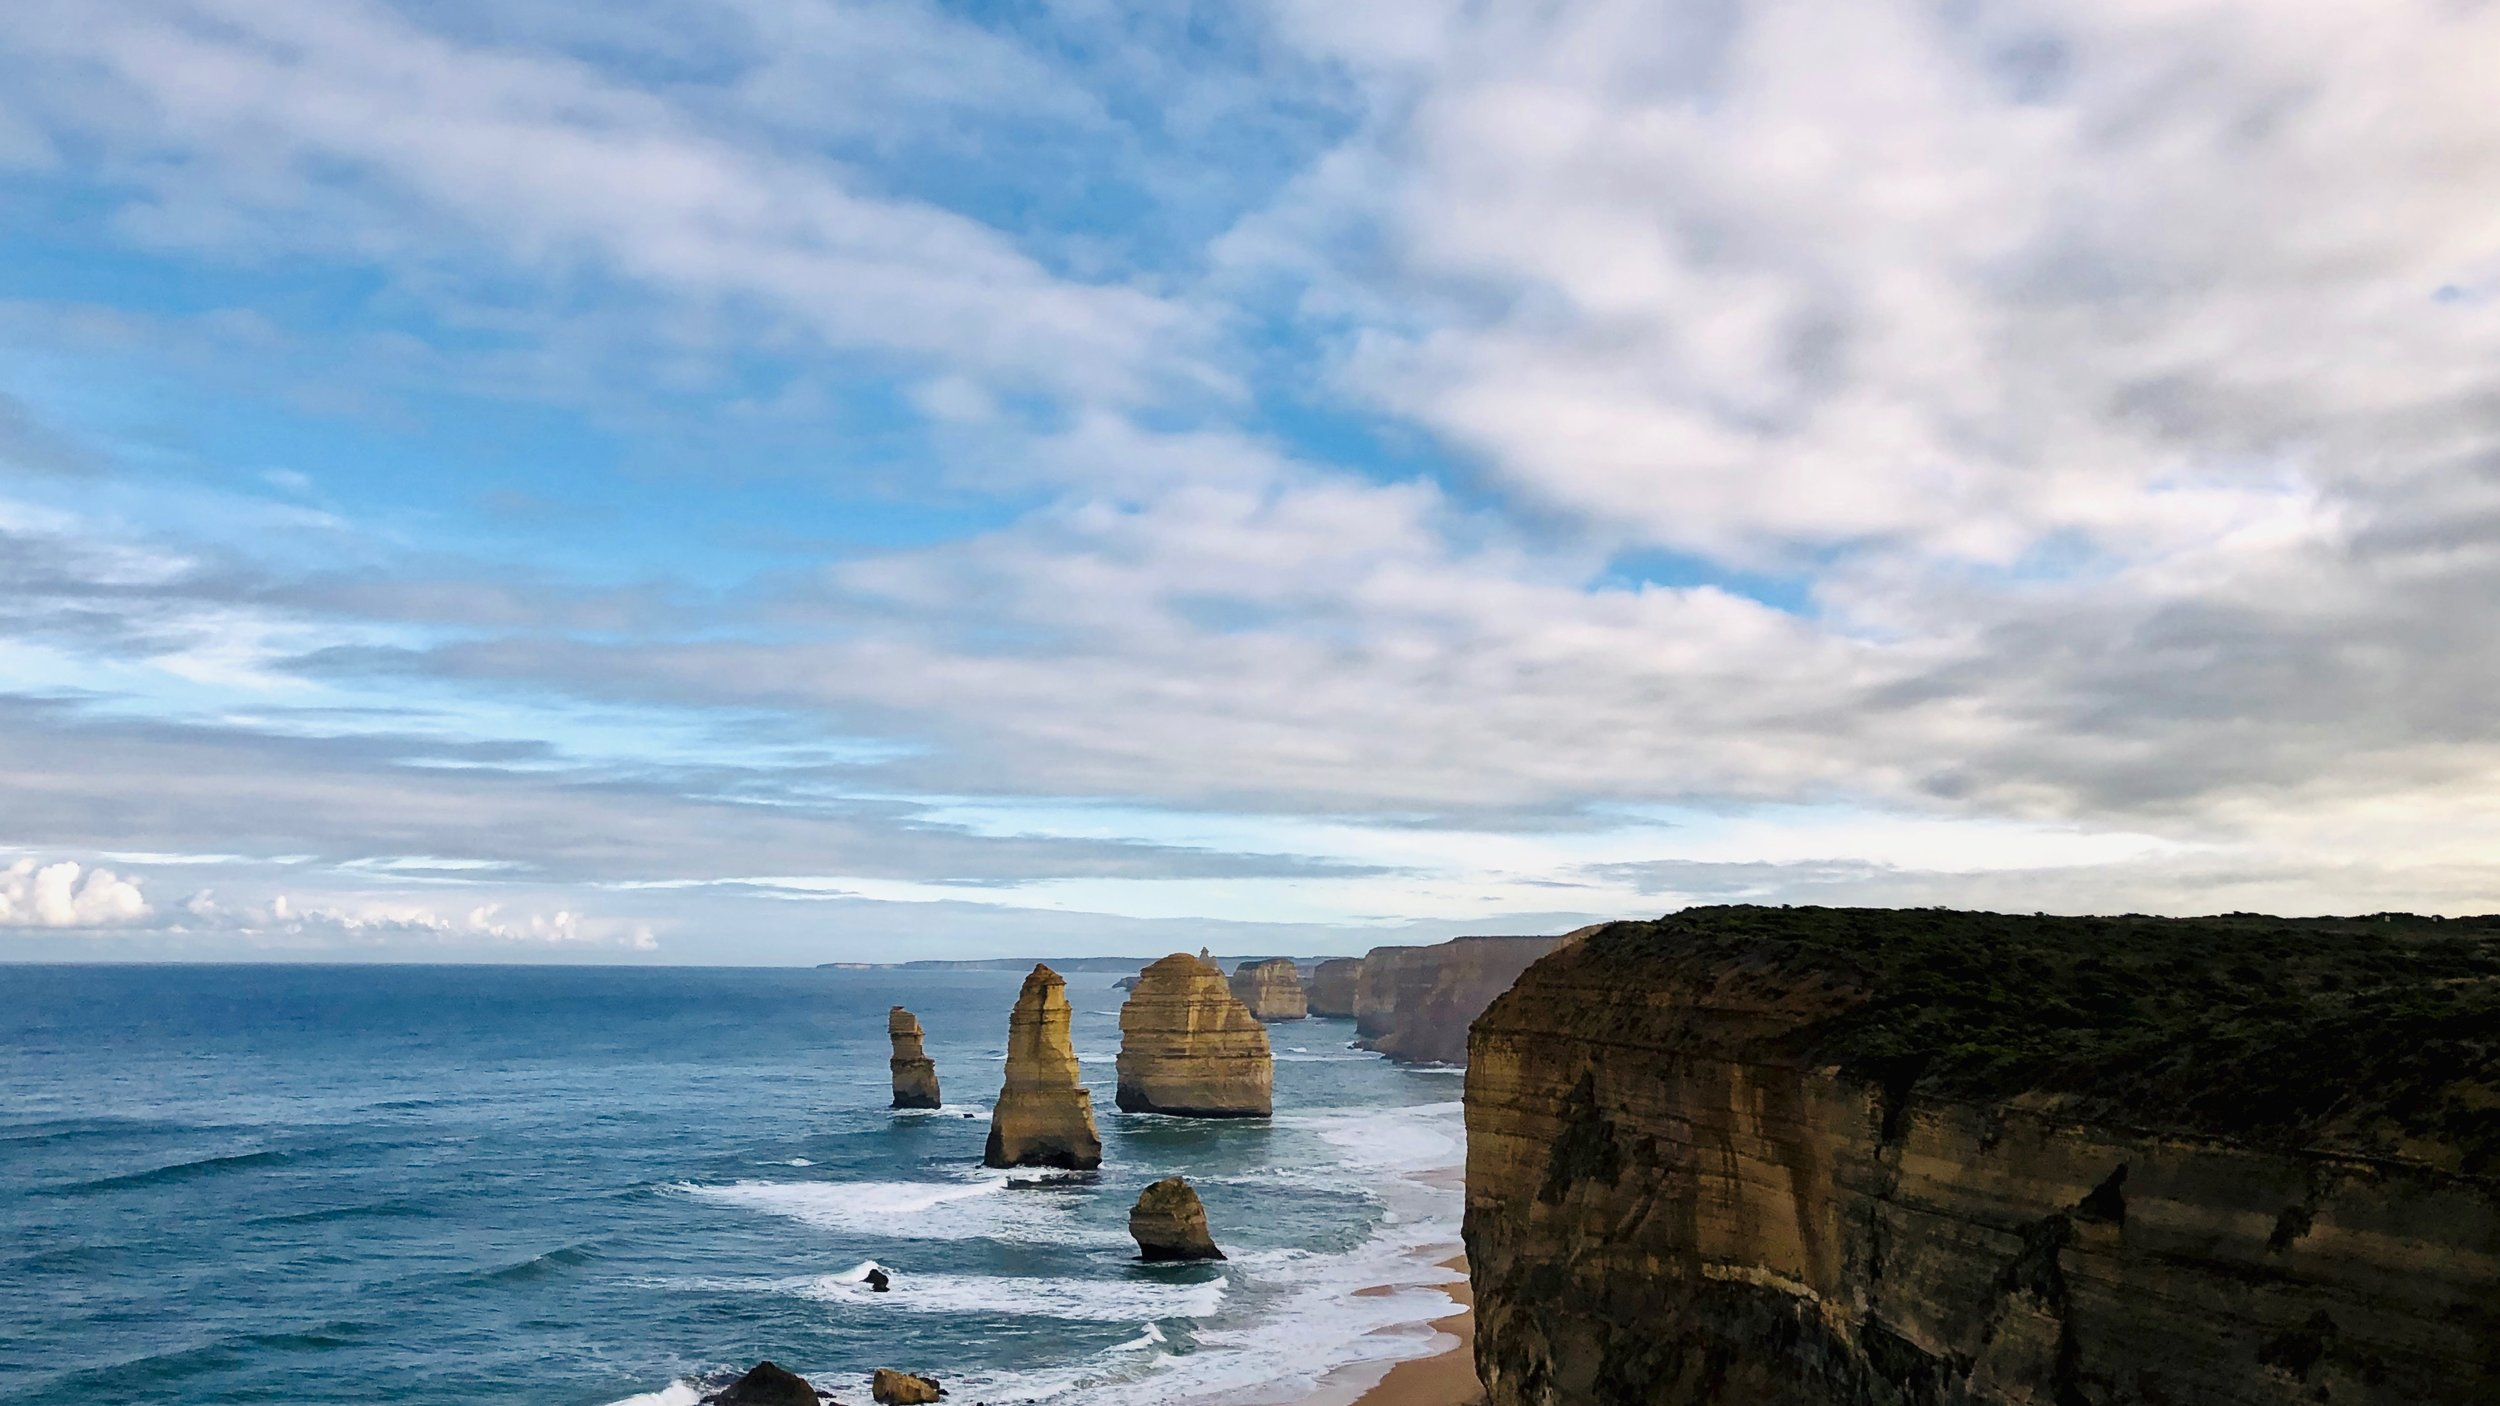 Breathtaking and scenic, The 12 Apostles is the mainstay road trip destination from Melbourne.